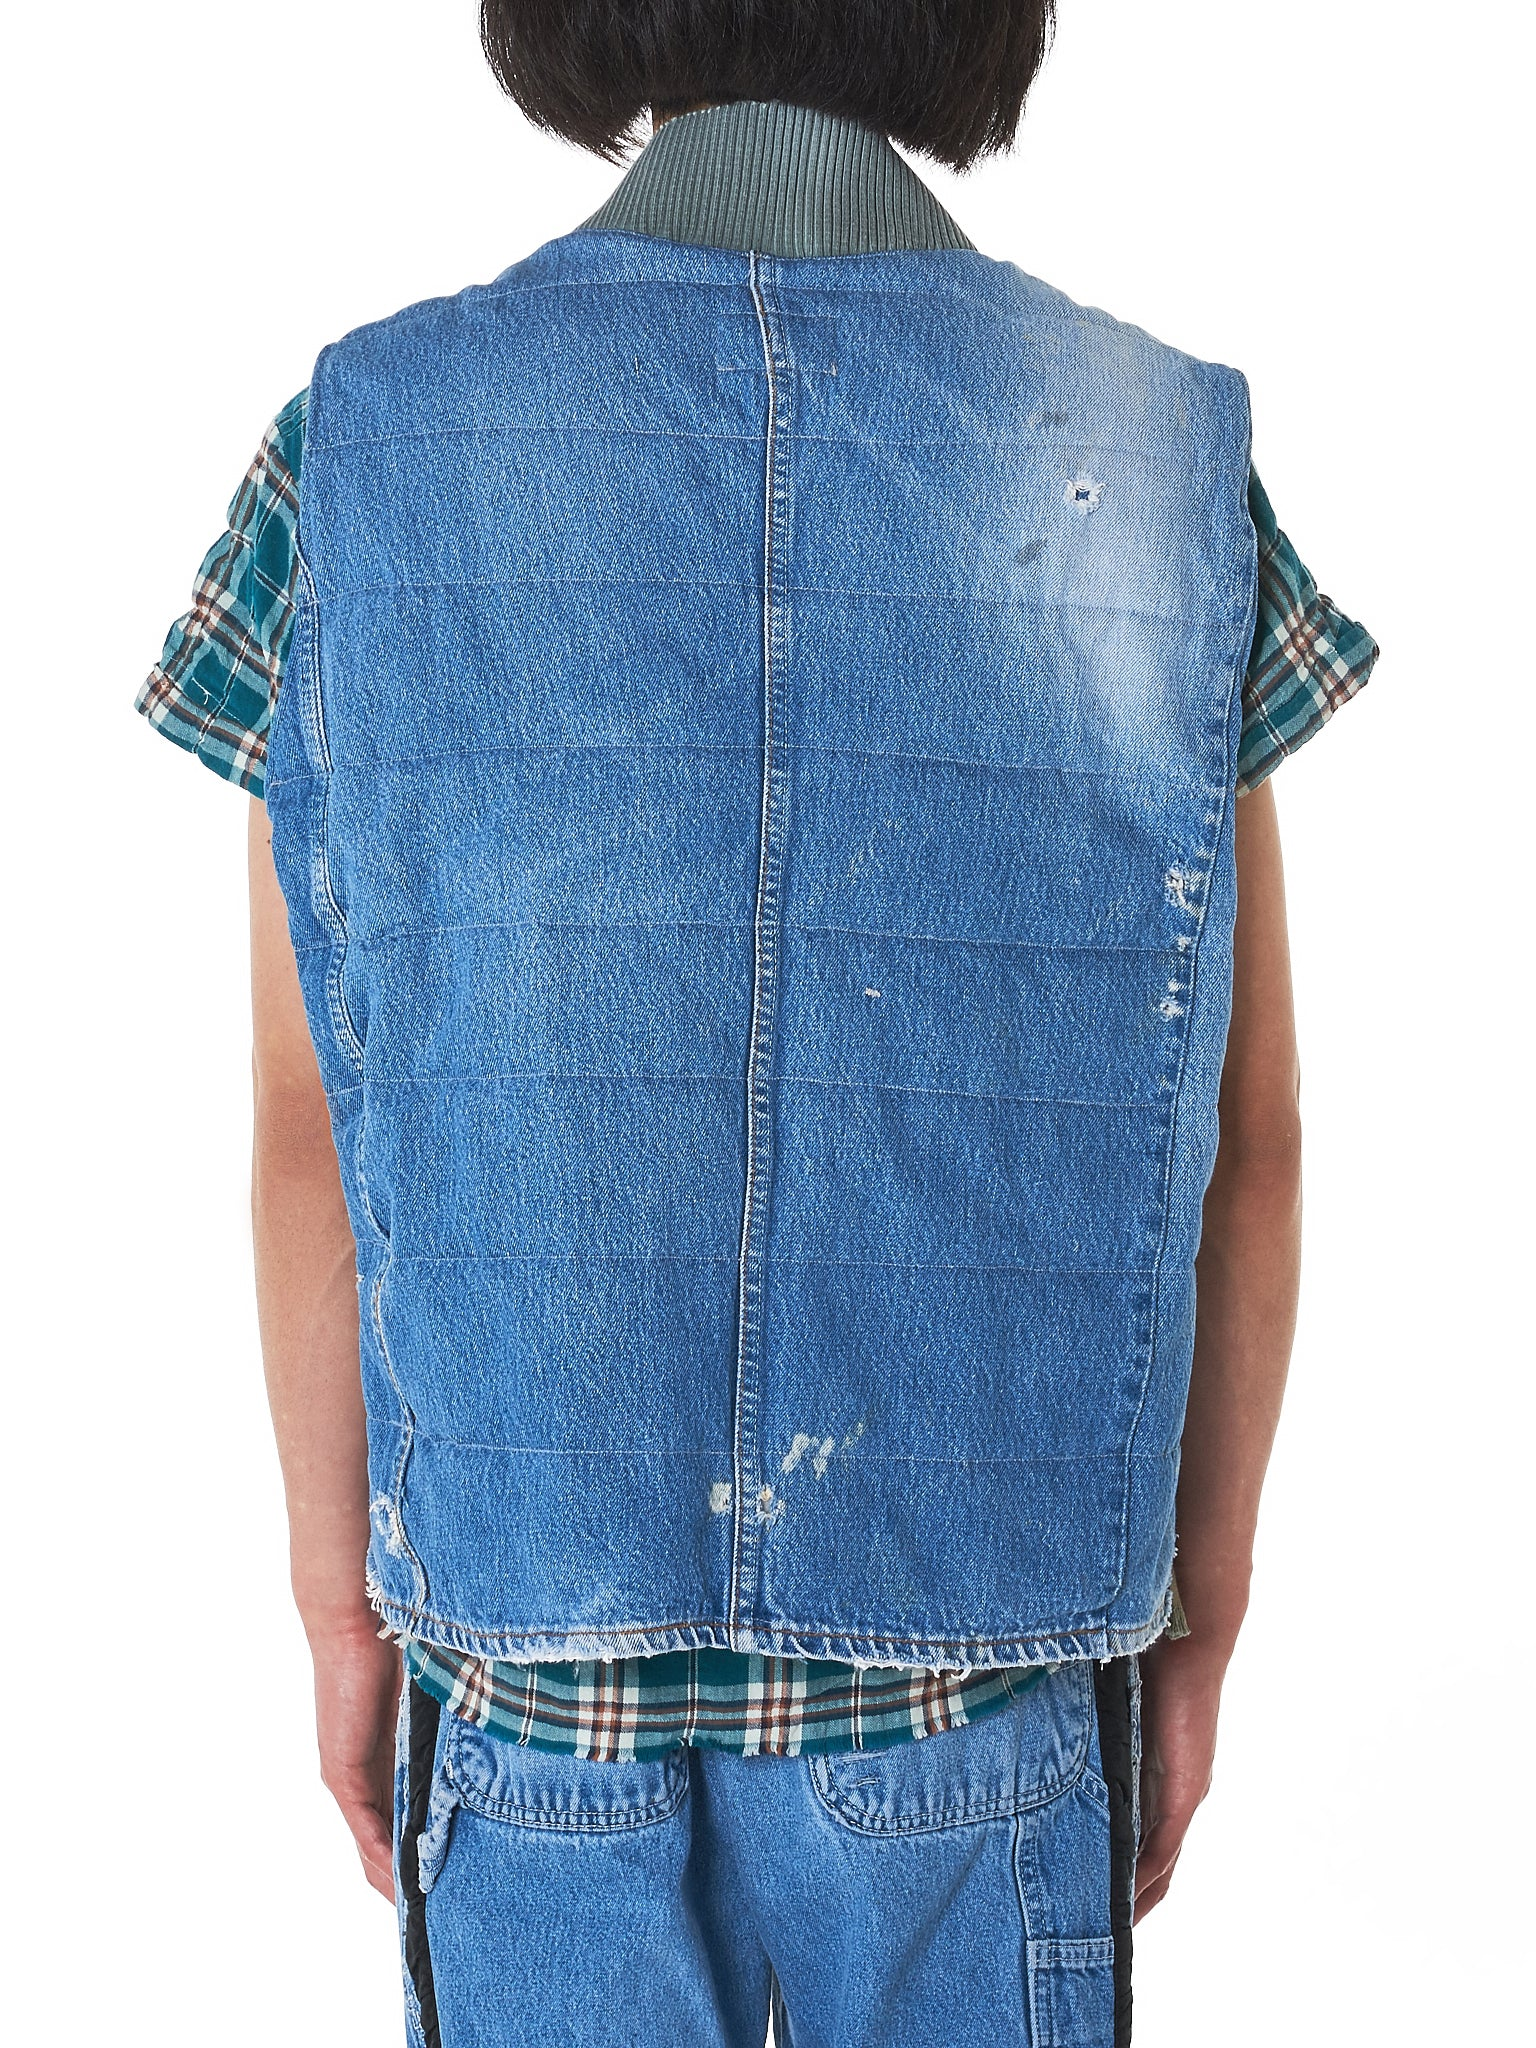 Greg Lauren Denim Vest - Hlorenzo Back